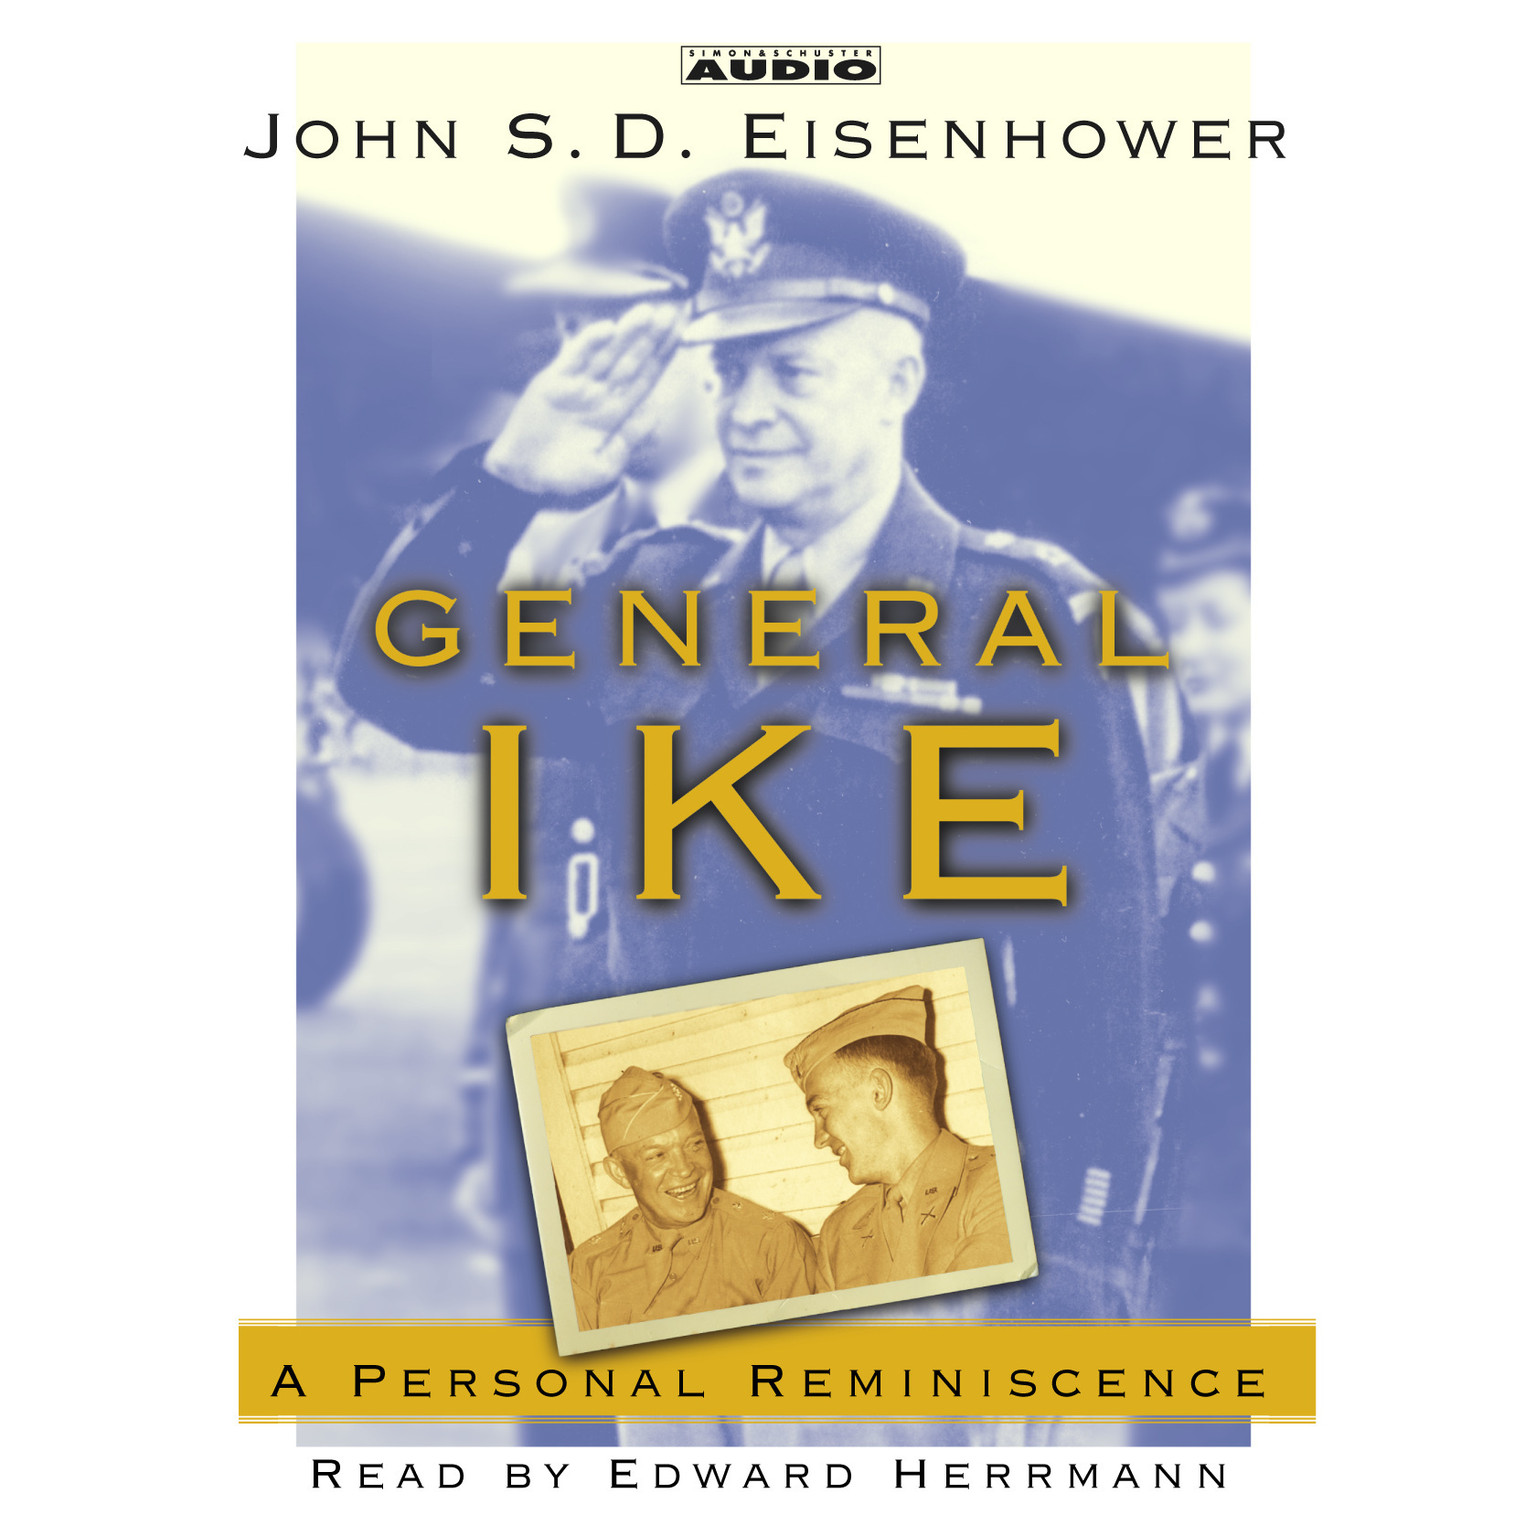 Printable General Ike: A Personal Reminiscence Audiobook Cover Art